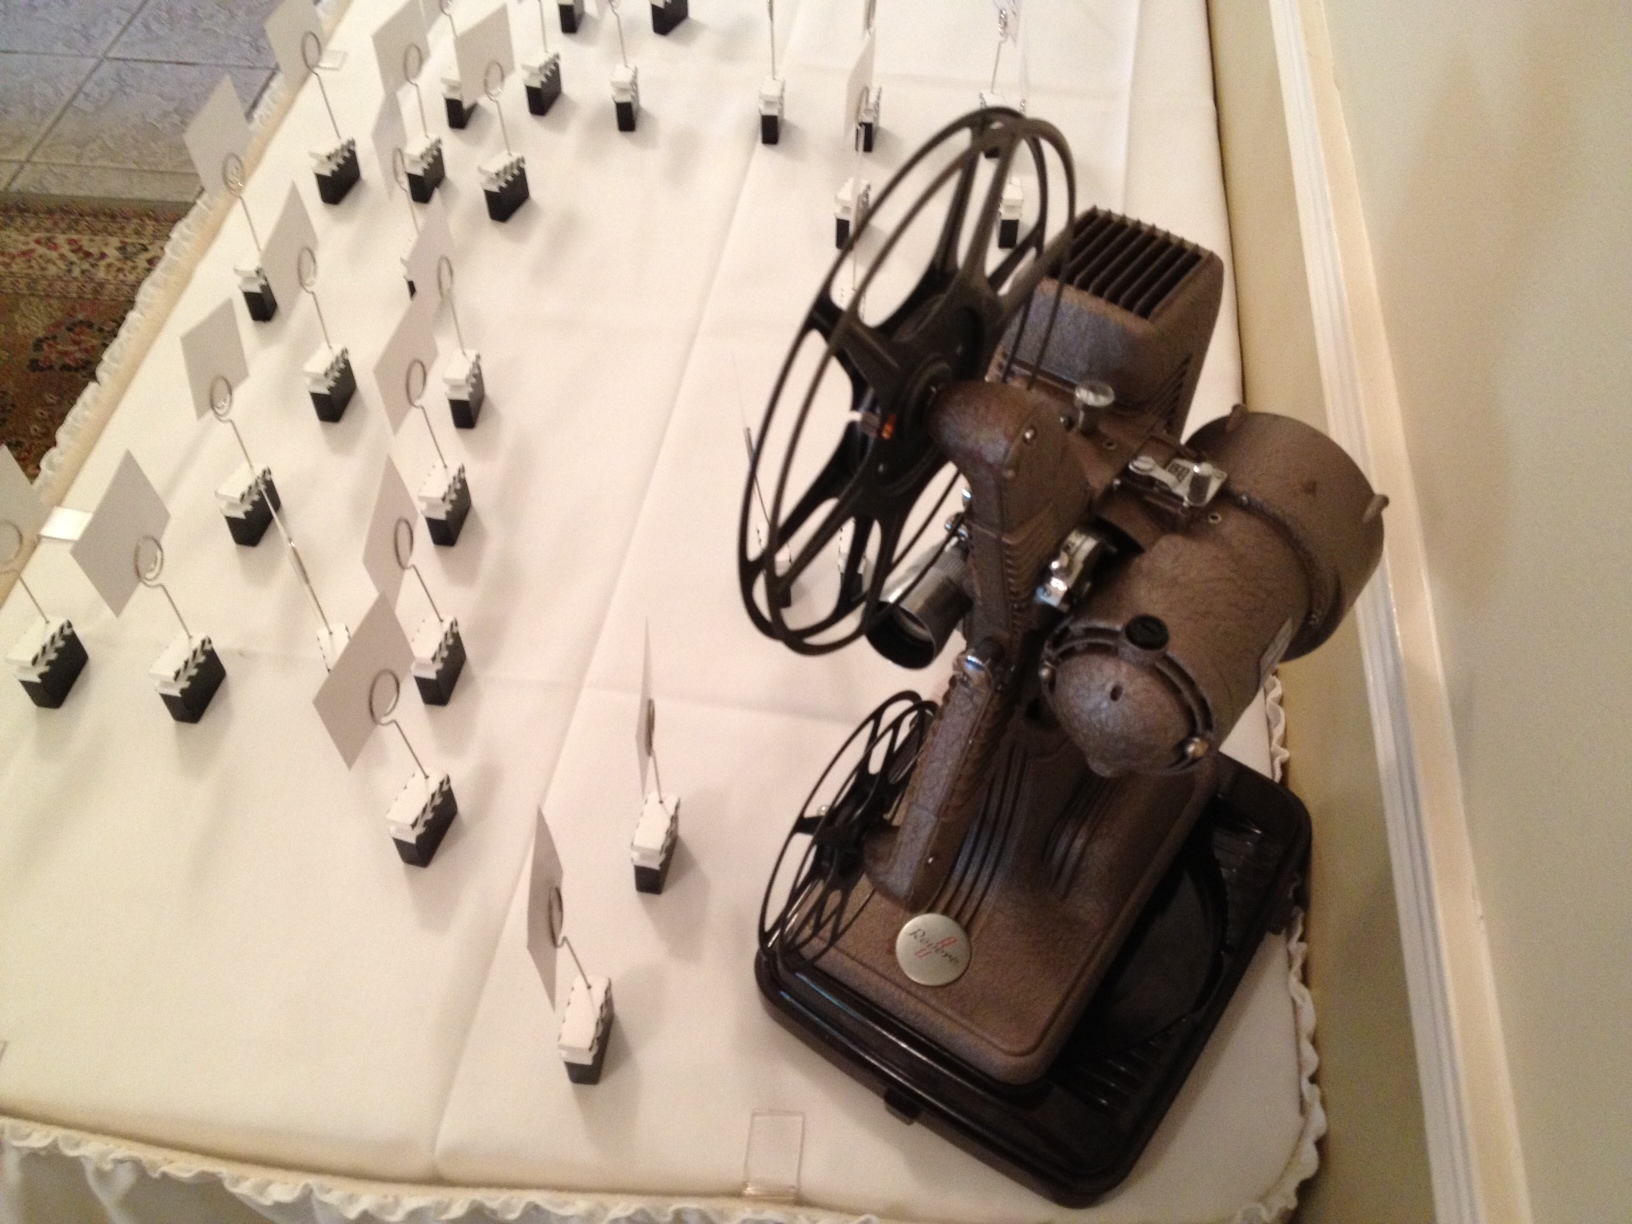 Movie themed wedding seat arrangements with vintage 16mm film projector.